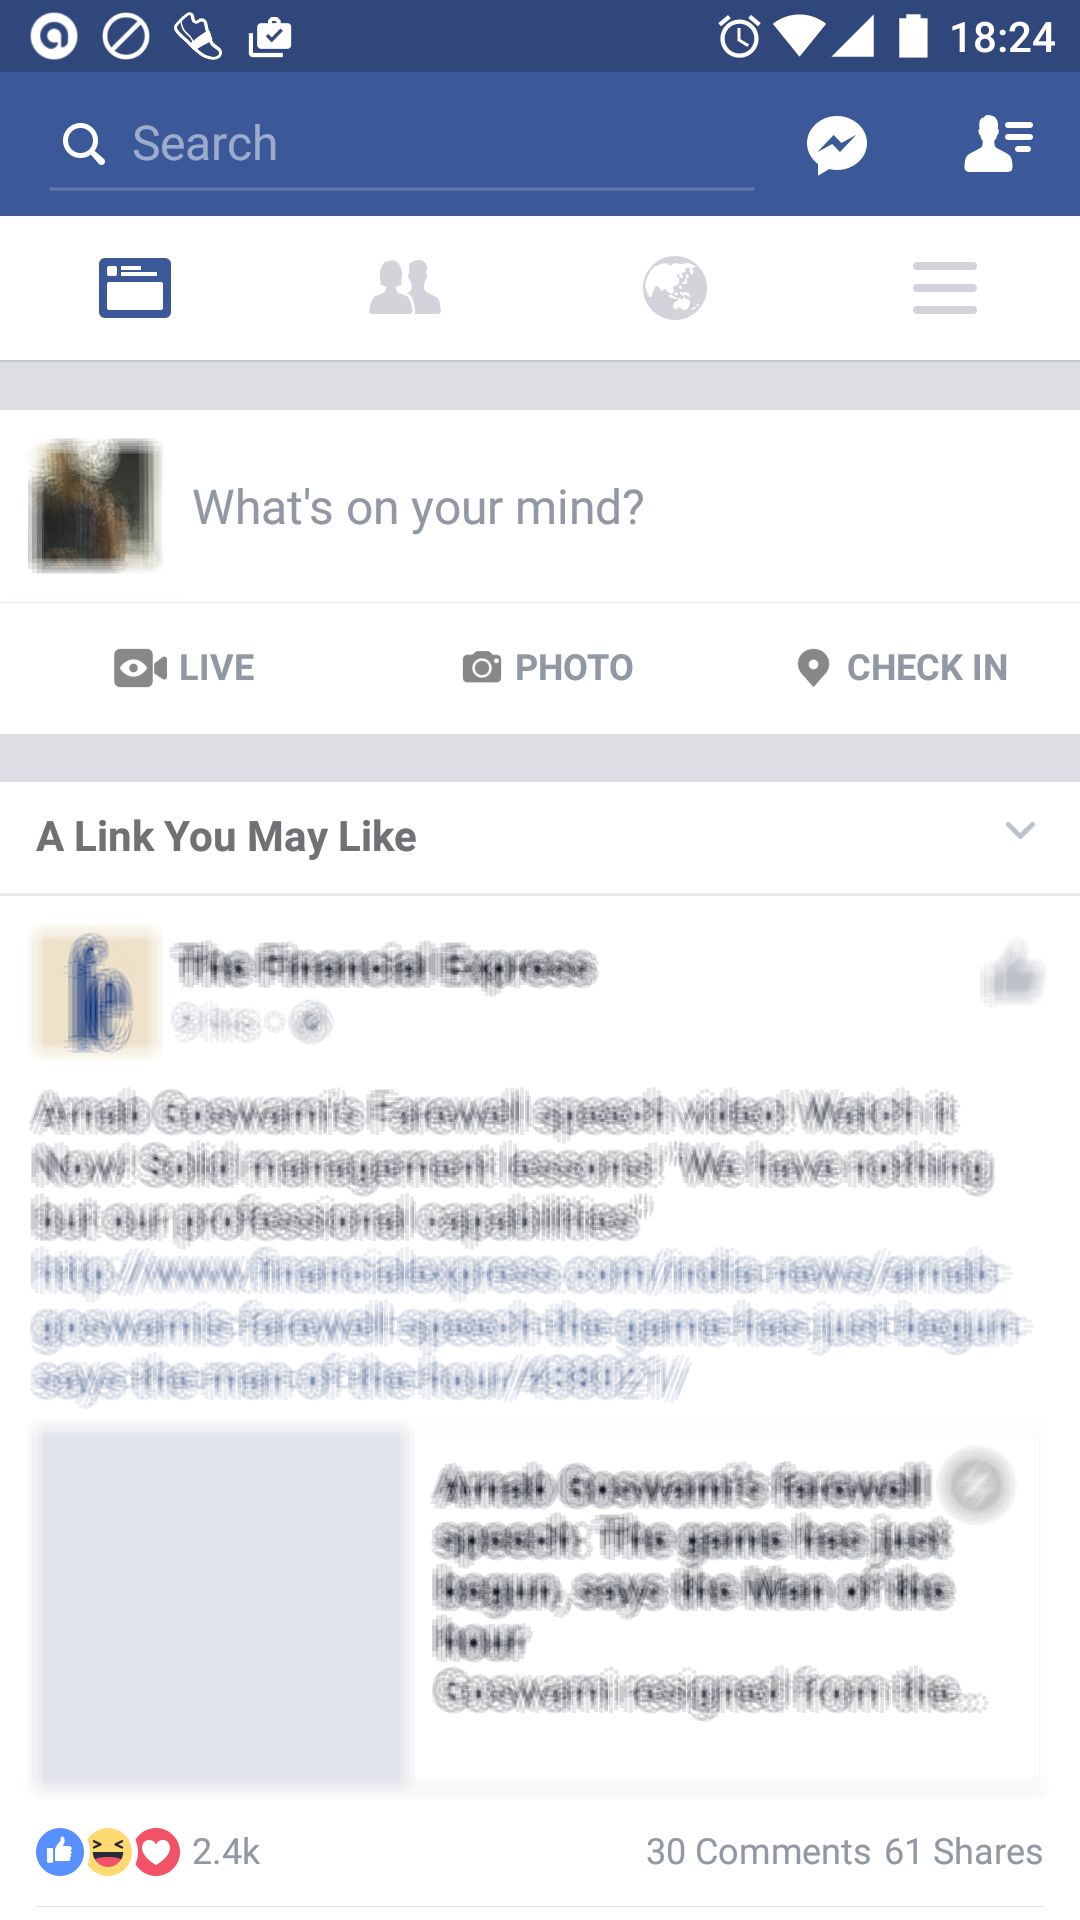 Facebook uses recommendation feature to increase engagement